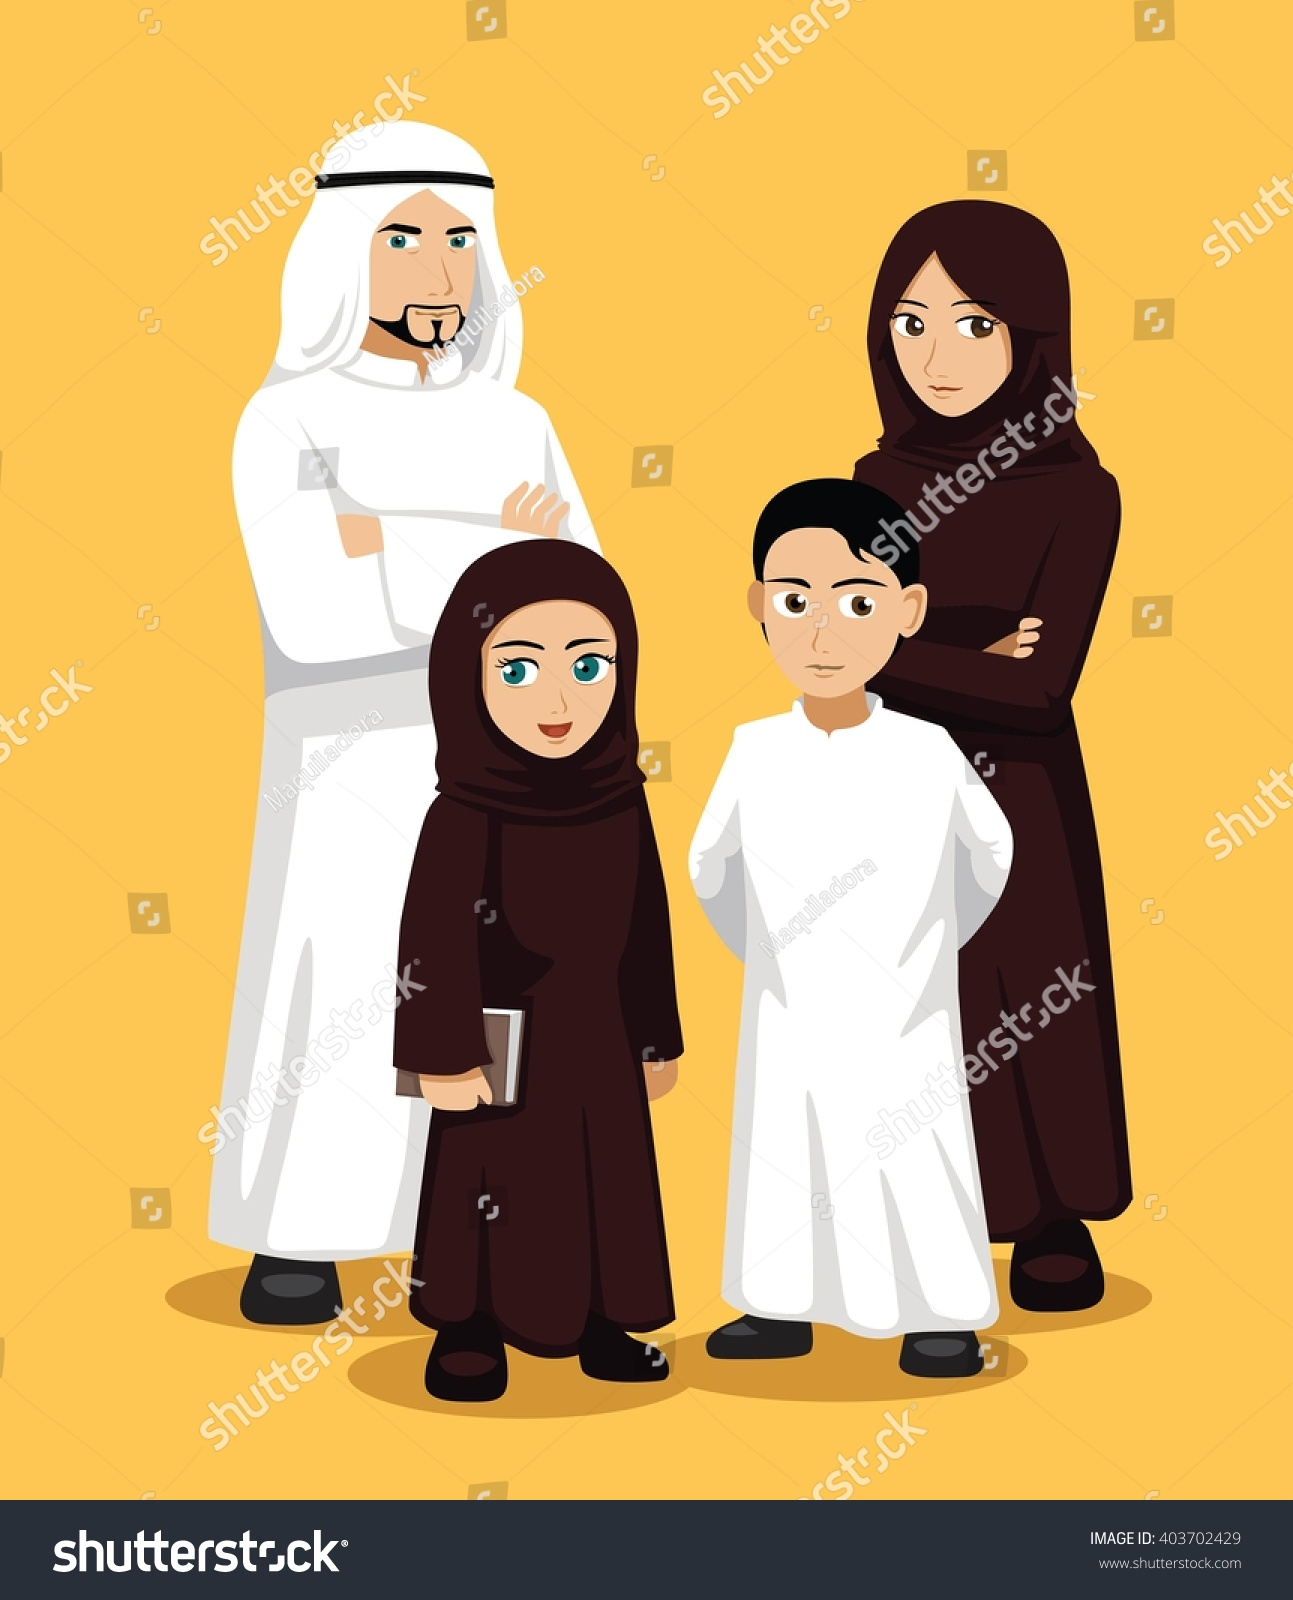 new hope muslim women dating site Arabiandate is the #1 arab dating site browse thousands of profiles of arab singles worldwide and make a real connection through live chat and correspondence arabiandatecom – dating site.